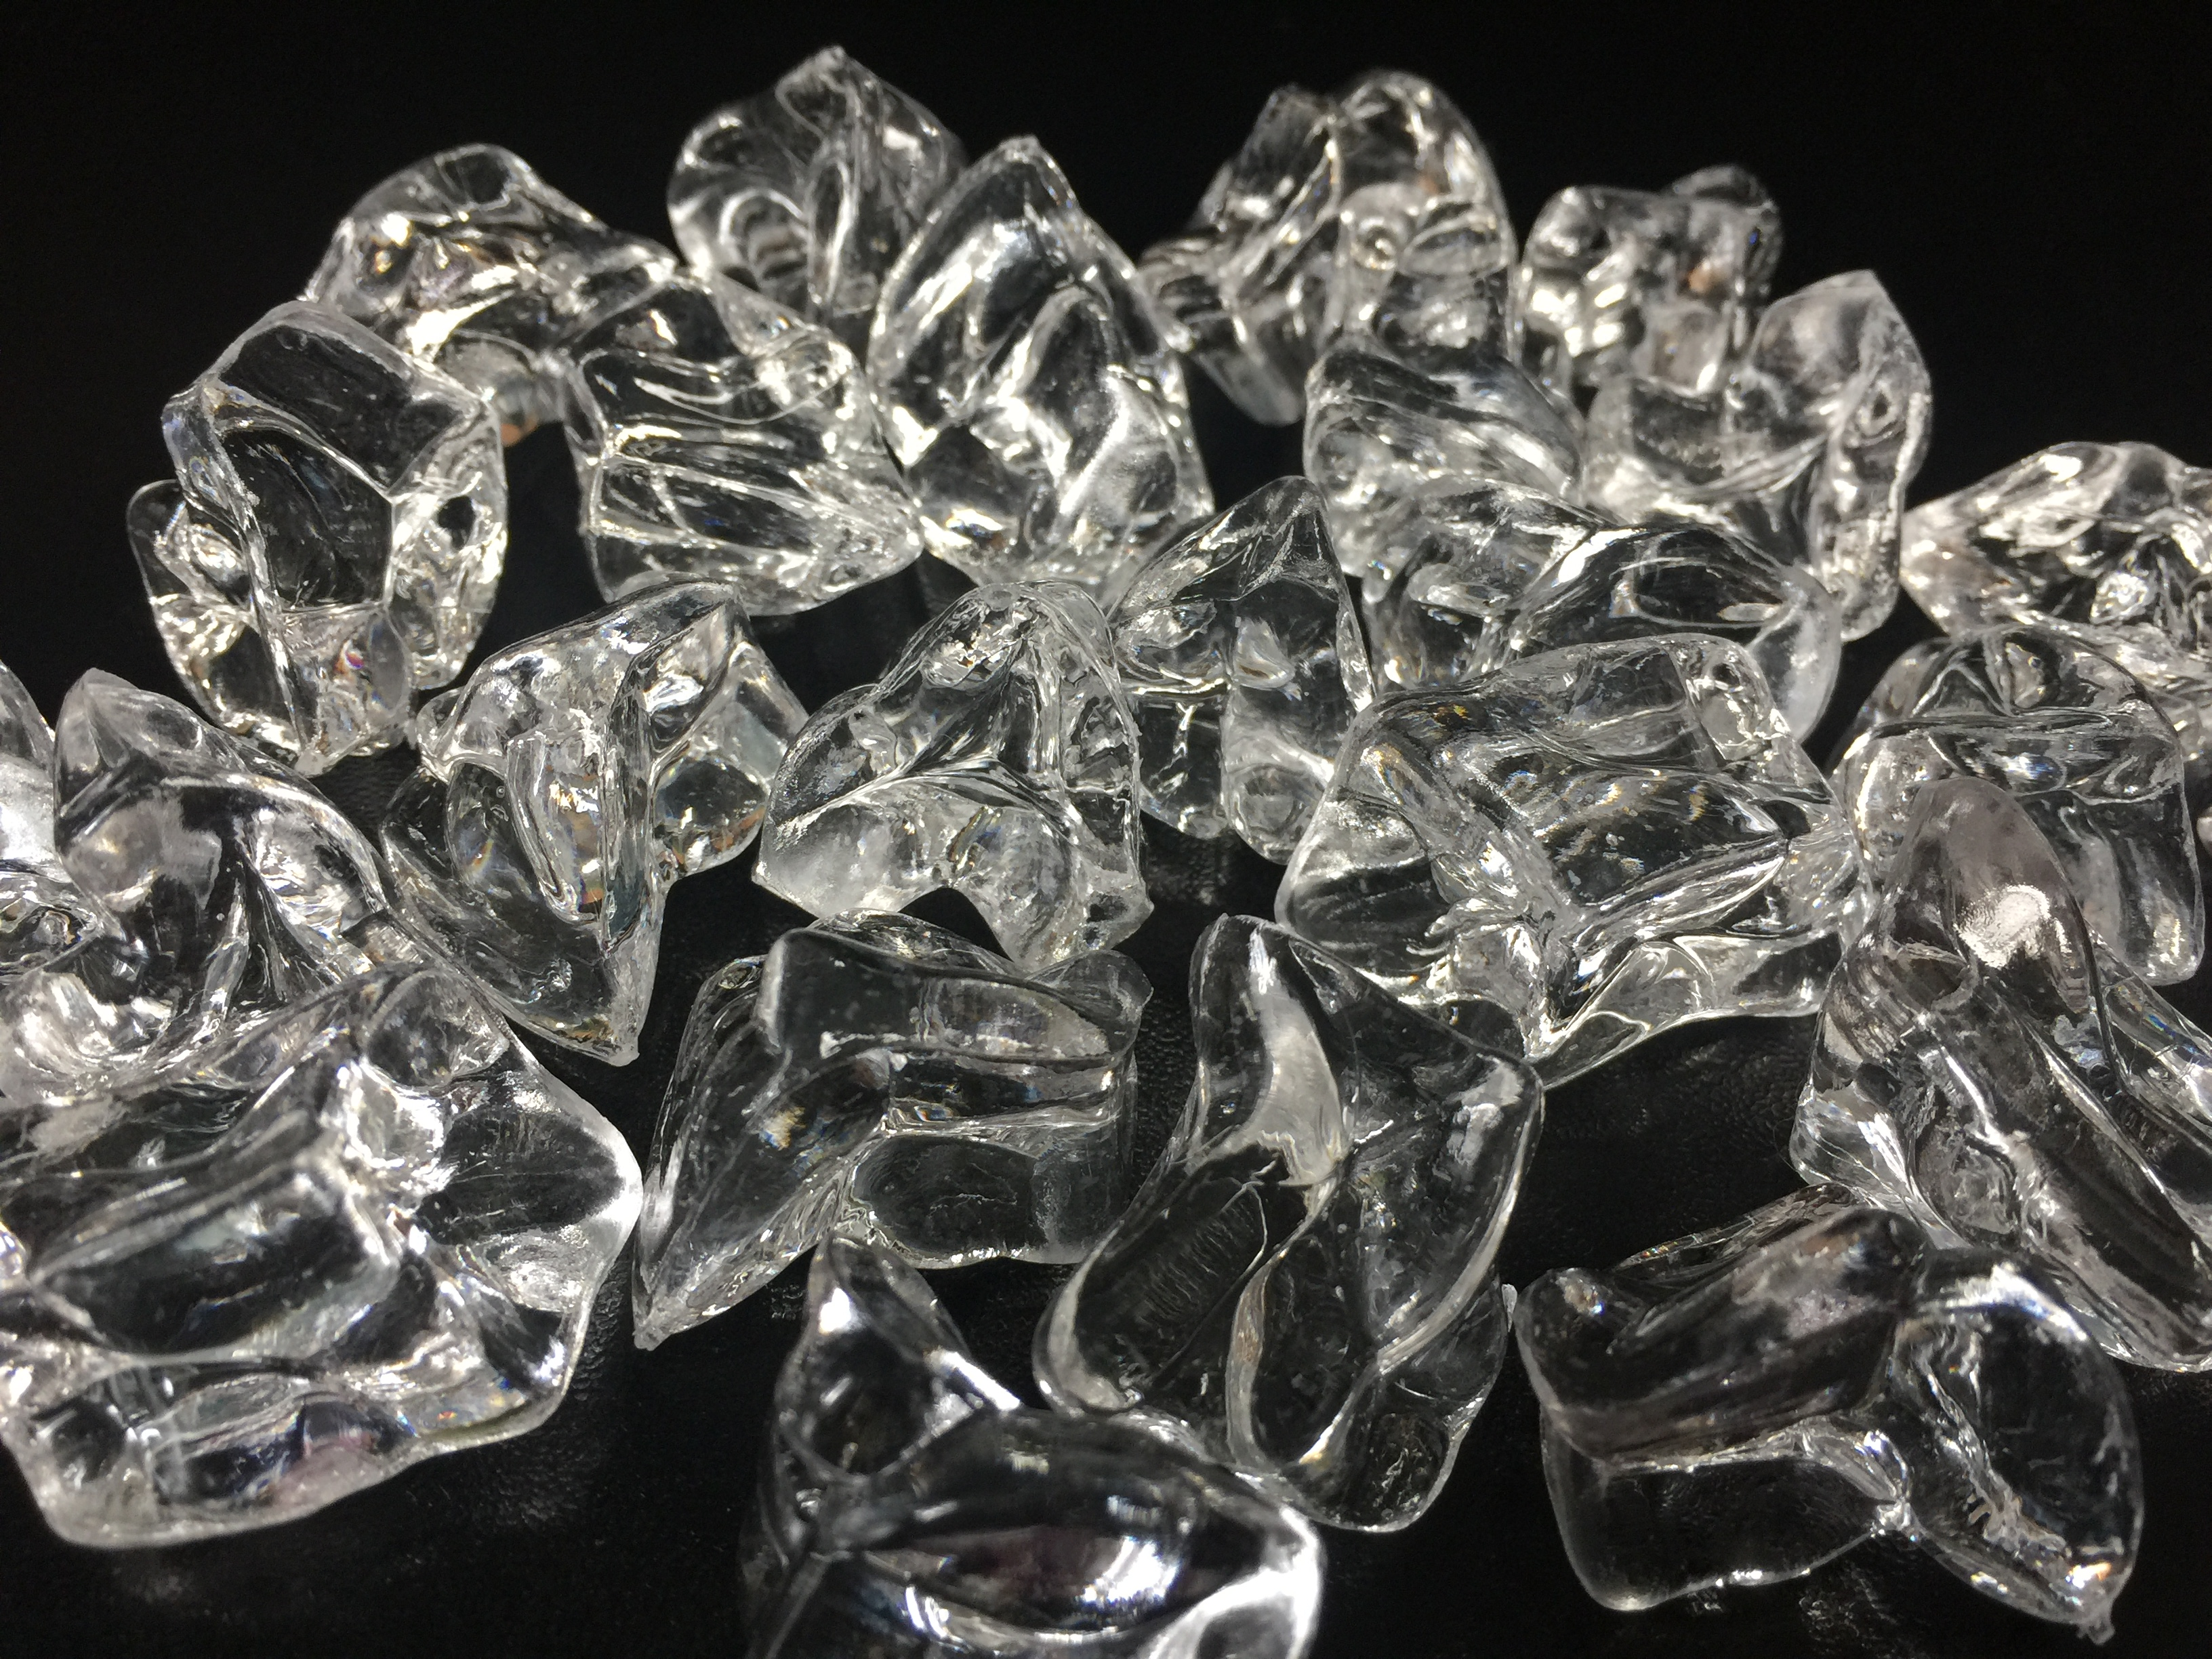 acrylic ice shards special effects unlimited